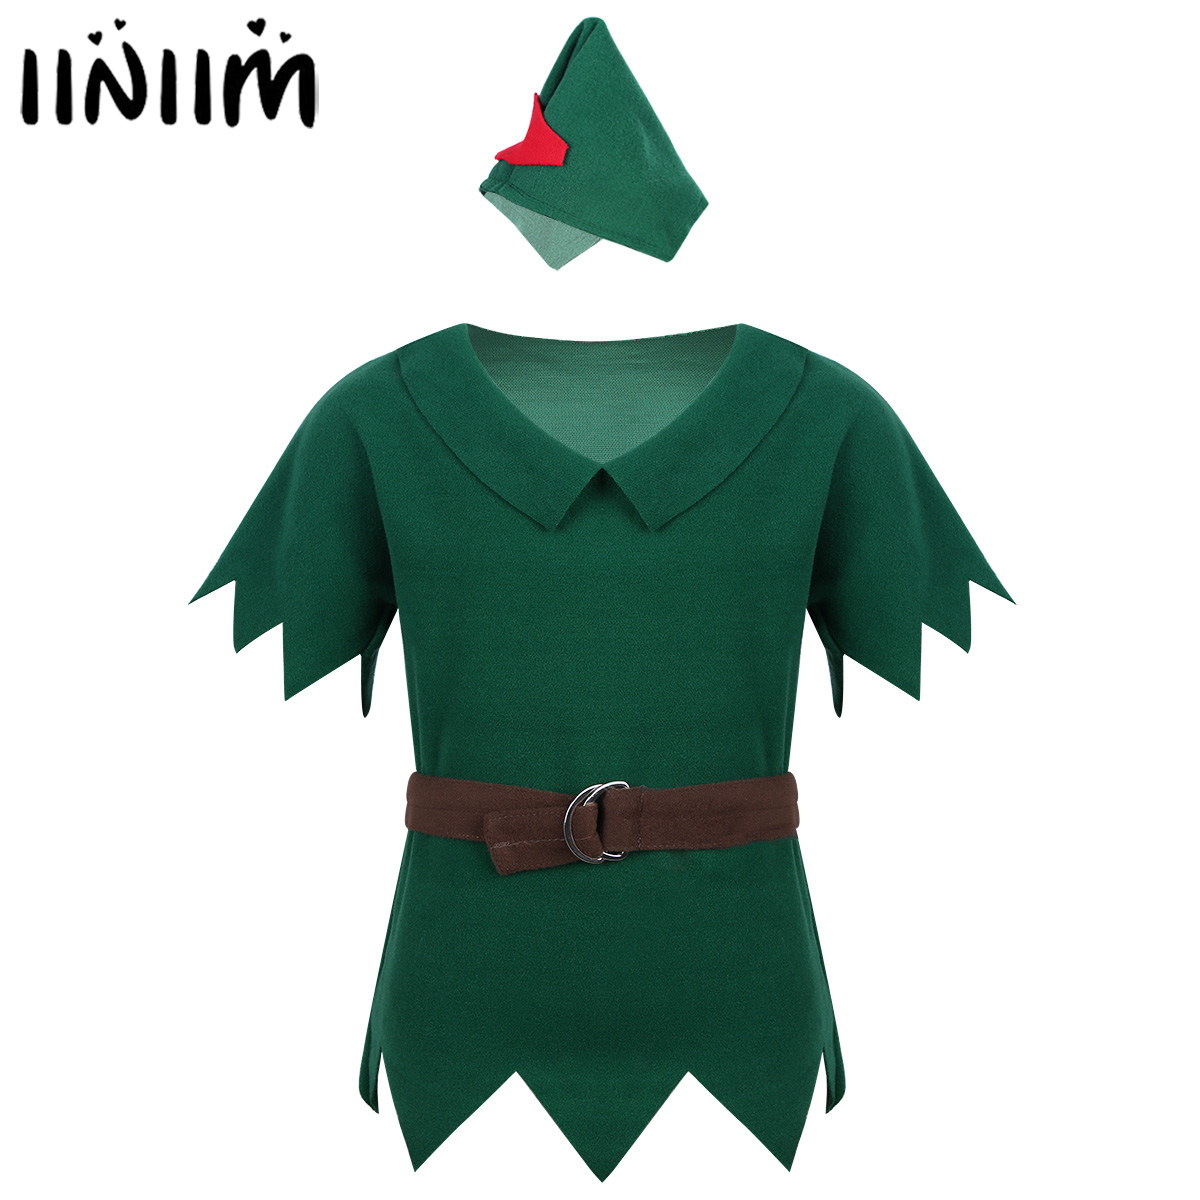 New Arrival Kids Boys Peter Pan Costumes T-shirt with Hat Belt Halloween Cosplay Party Boy for Fancy Carnival Role Play Clothing